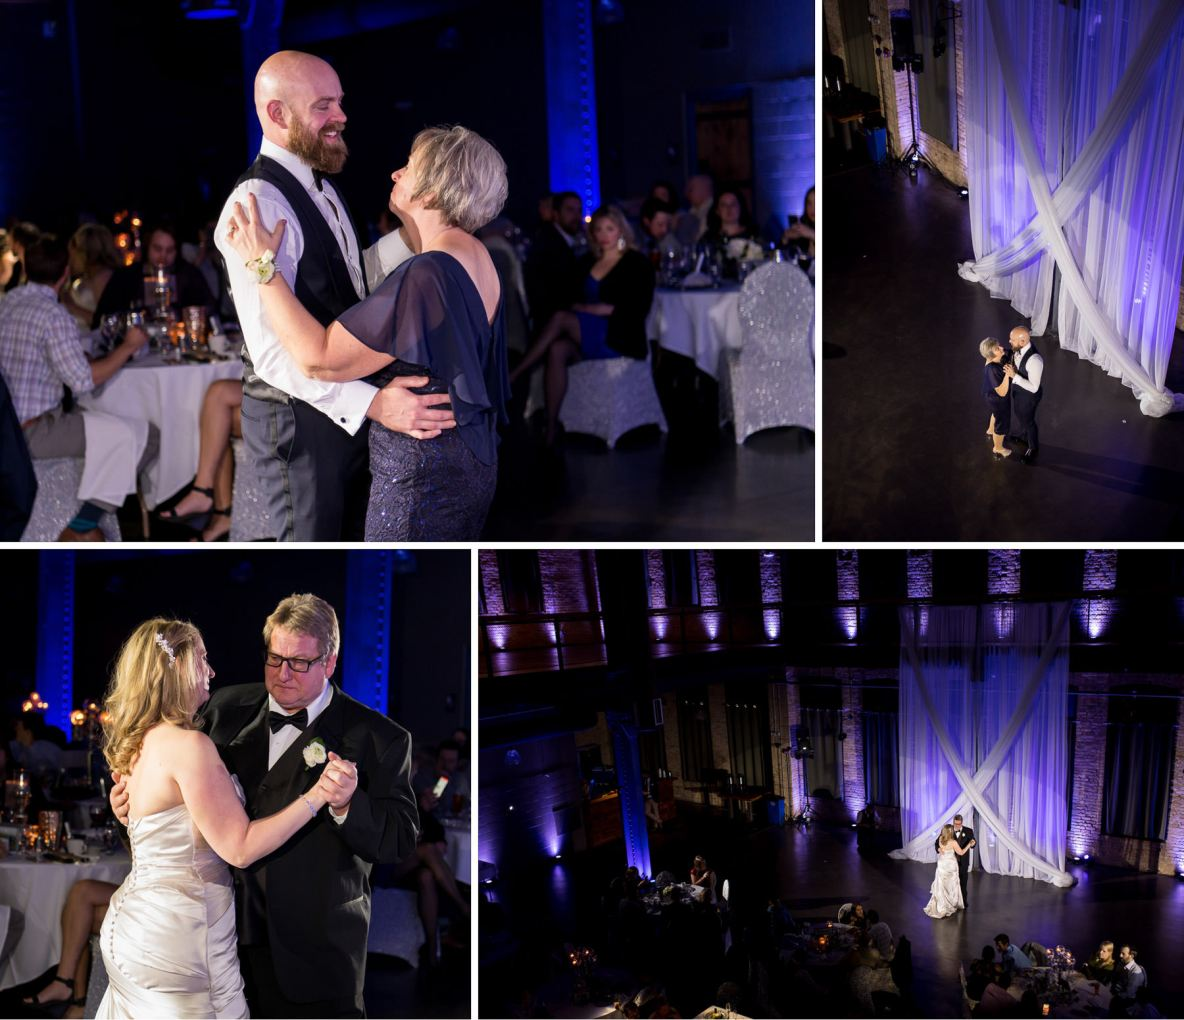 Photos of Chris and Lindsay's first dance.